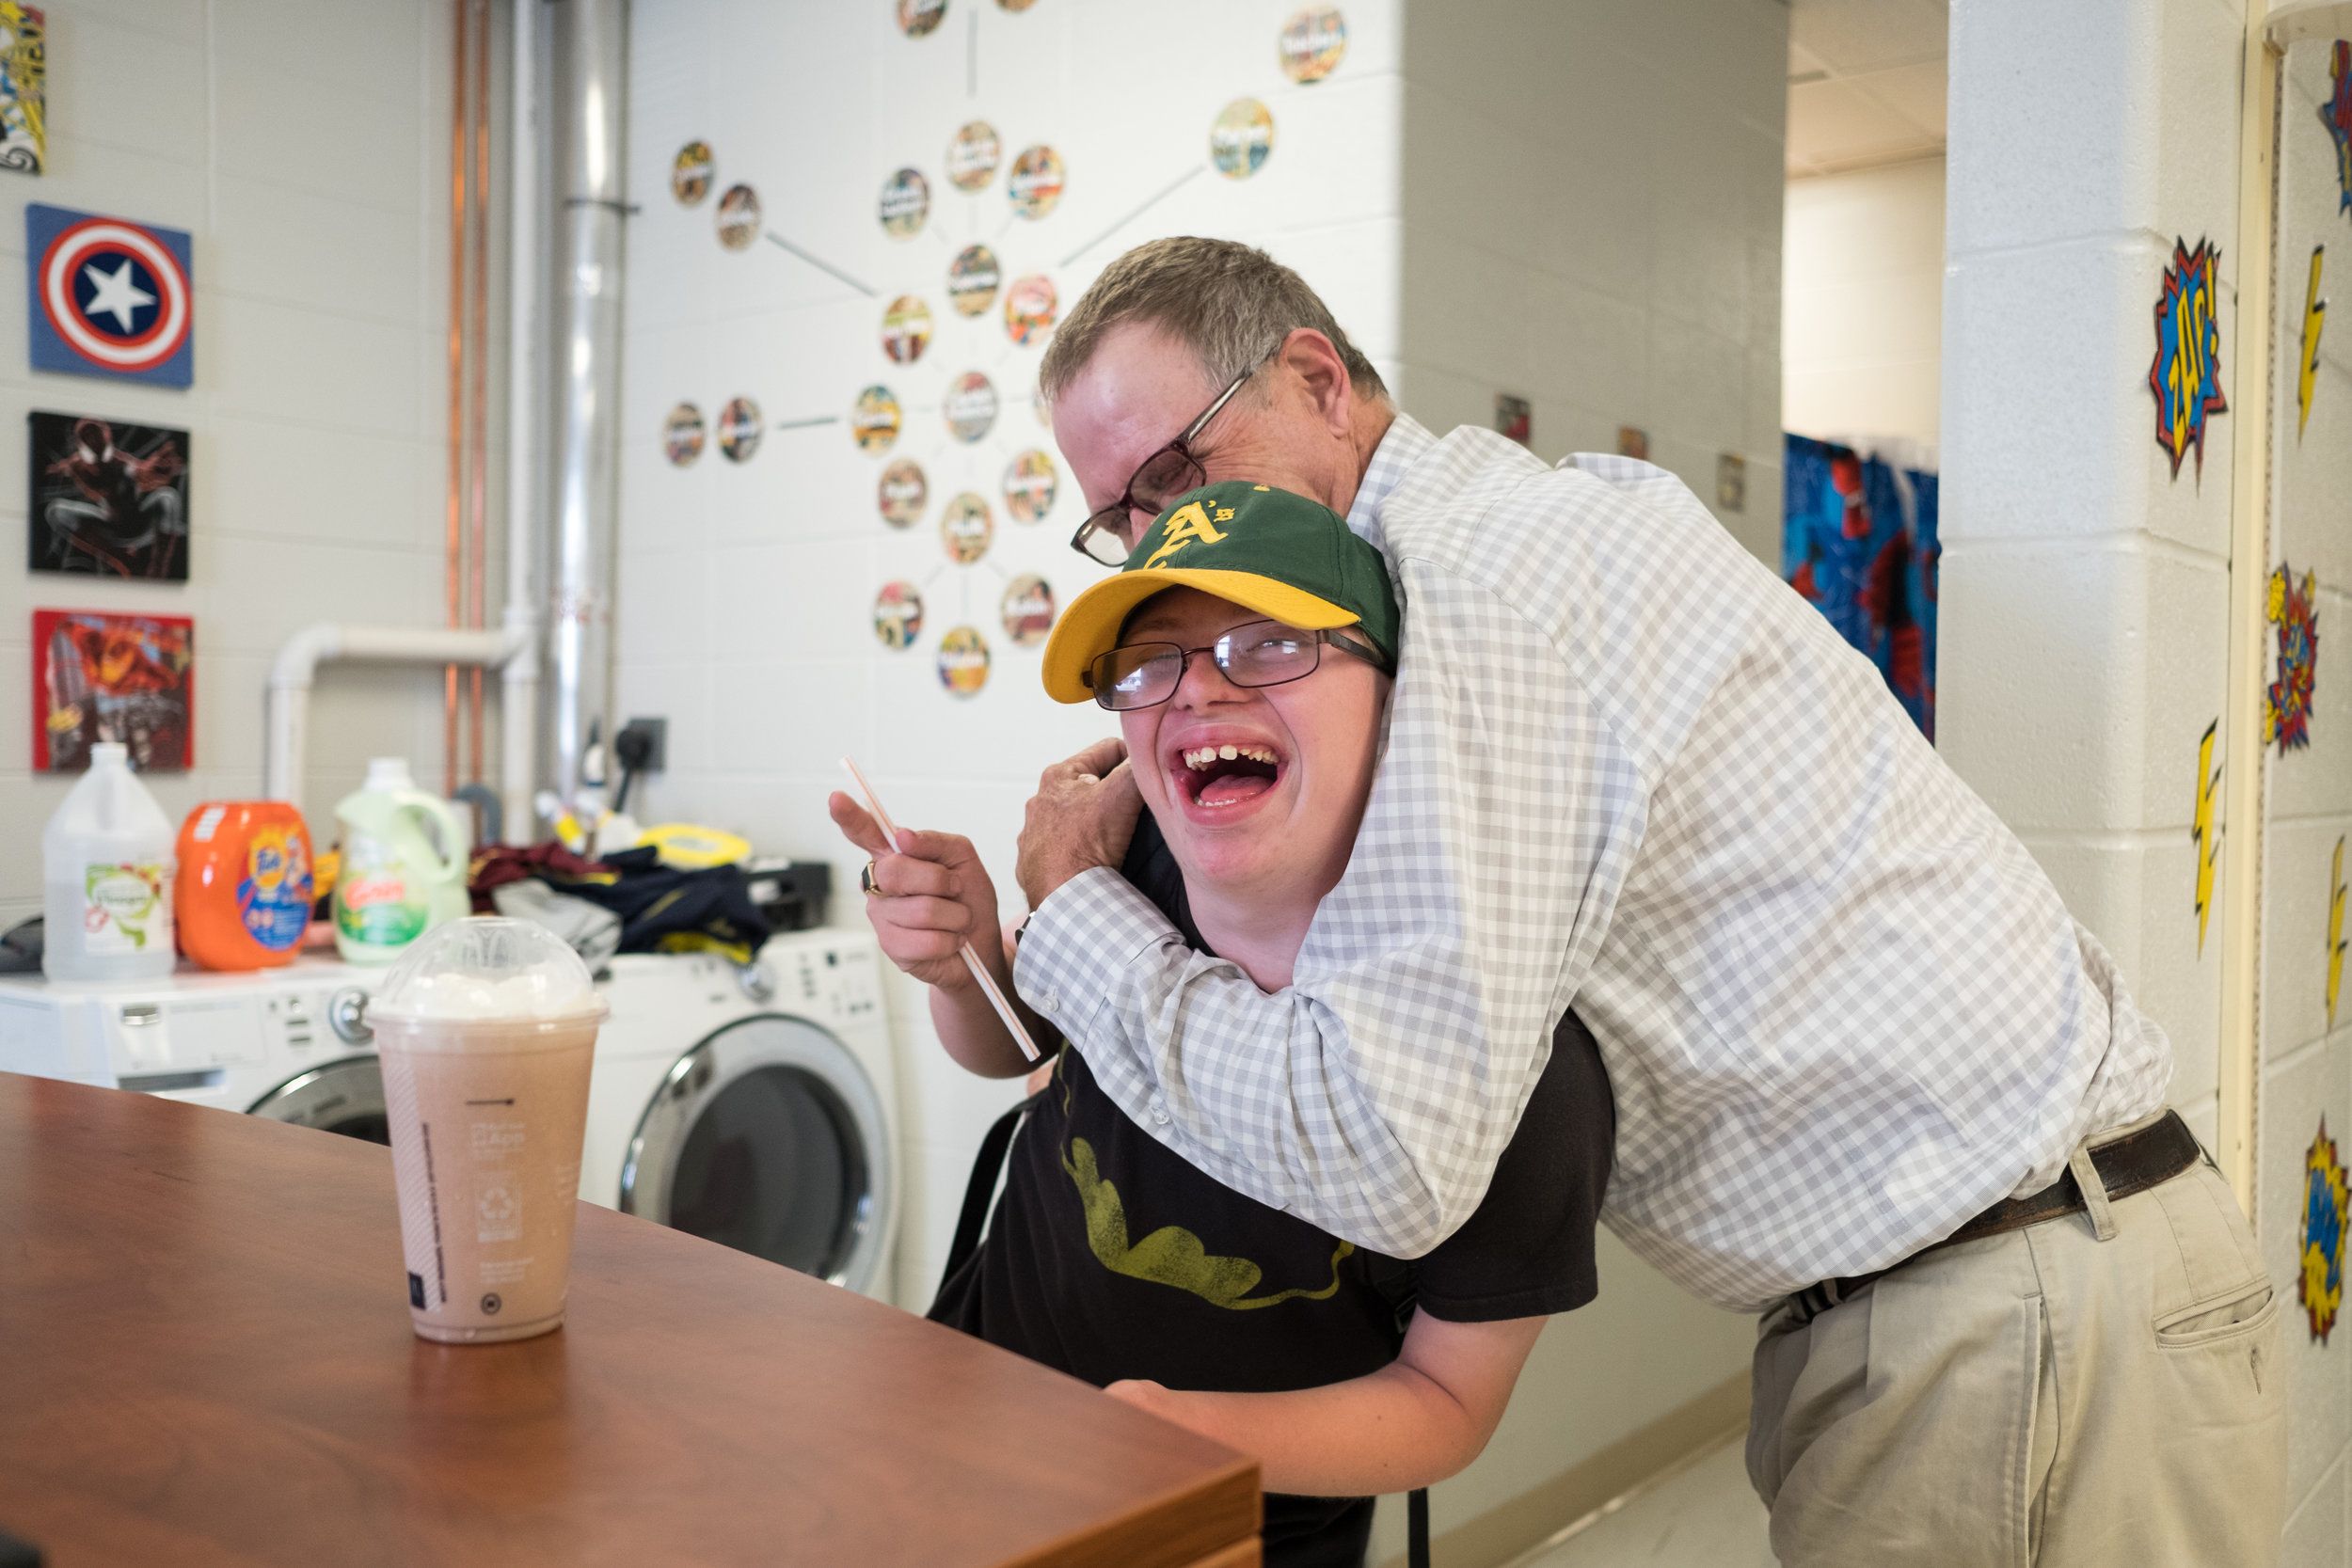 After Greg's shift he picks up a chocolate shake for his son, Luke, to reward Luke for doing well in class. Luke, was born two months premature with a severely damaged heart and Downs Syndrome.